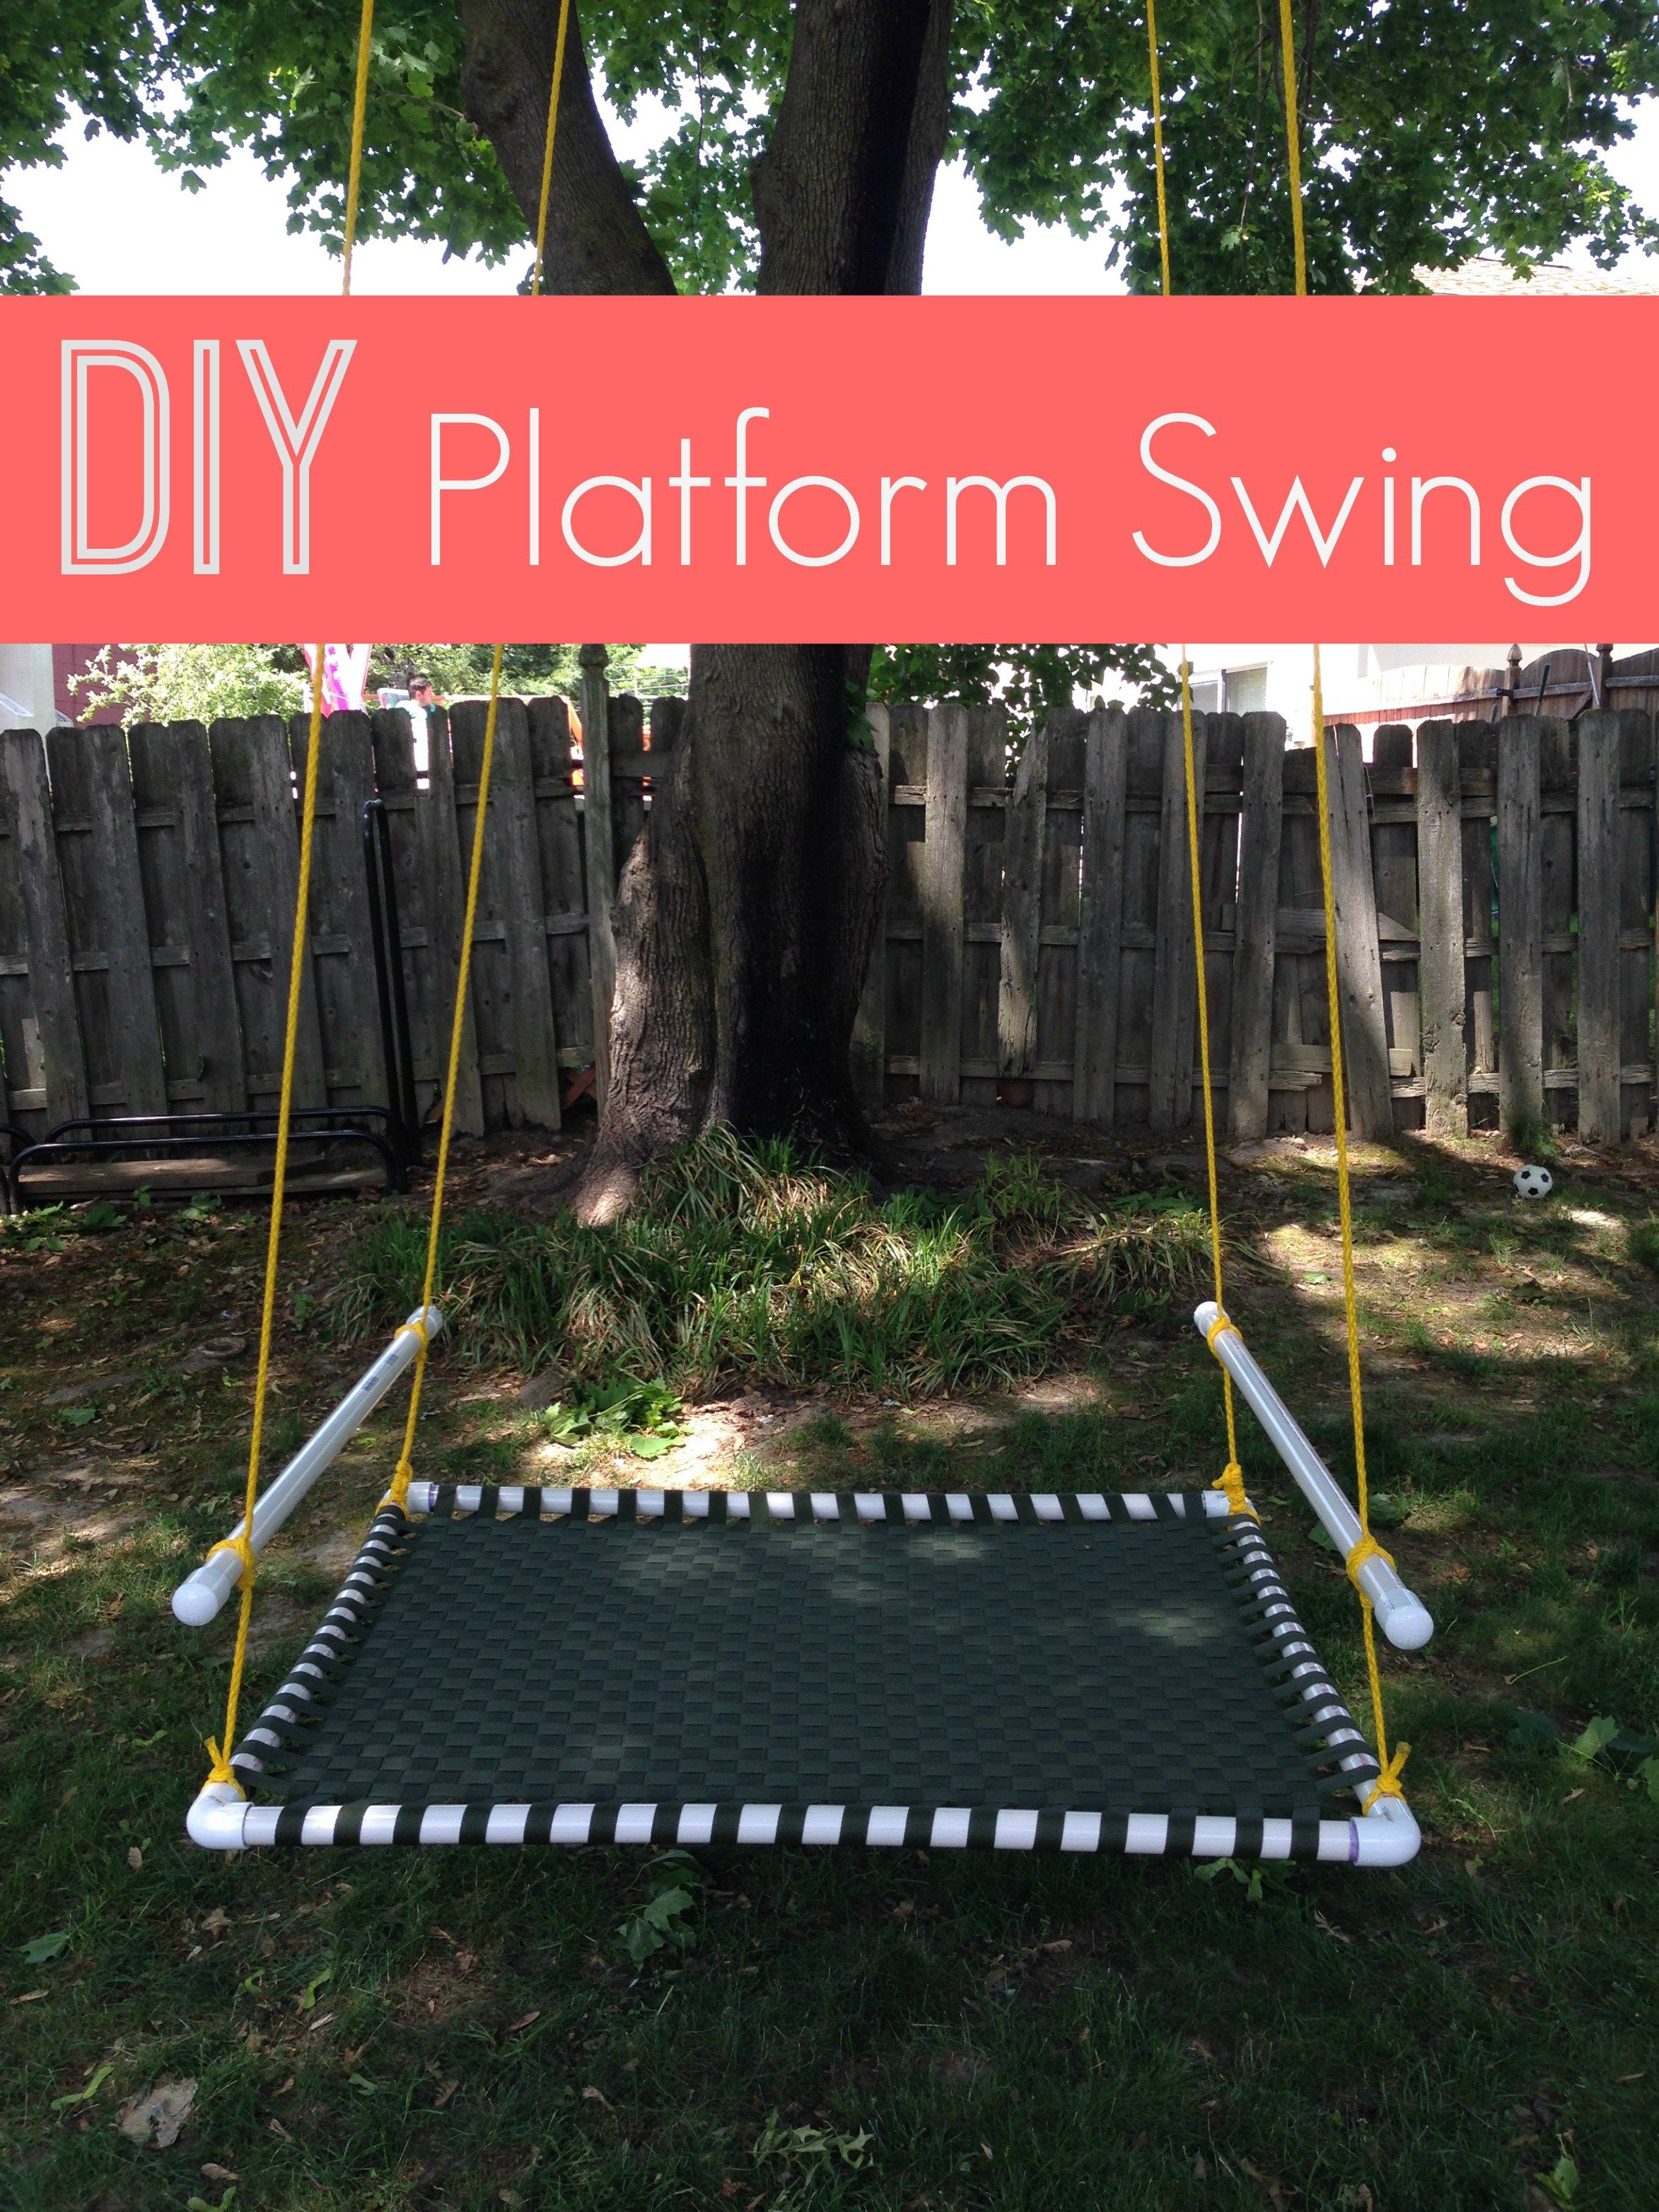 diy platform swing diy projects pinterest swings backyard